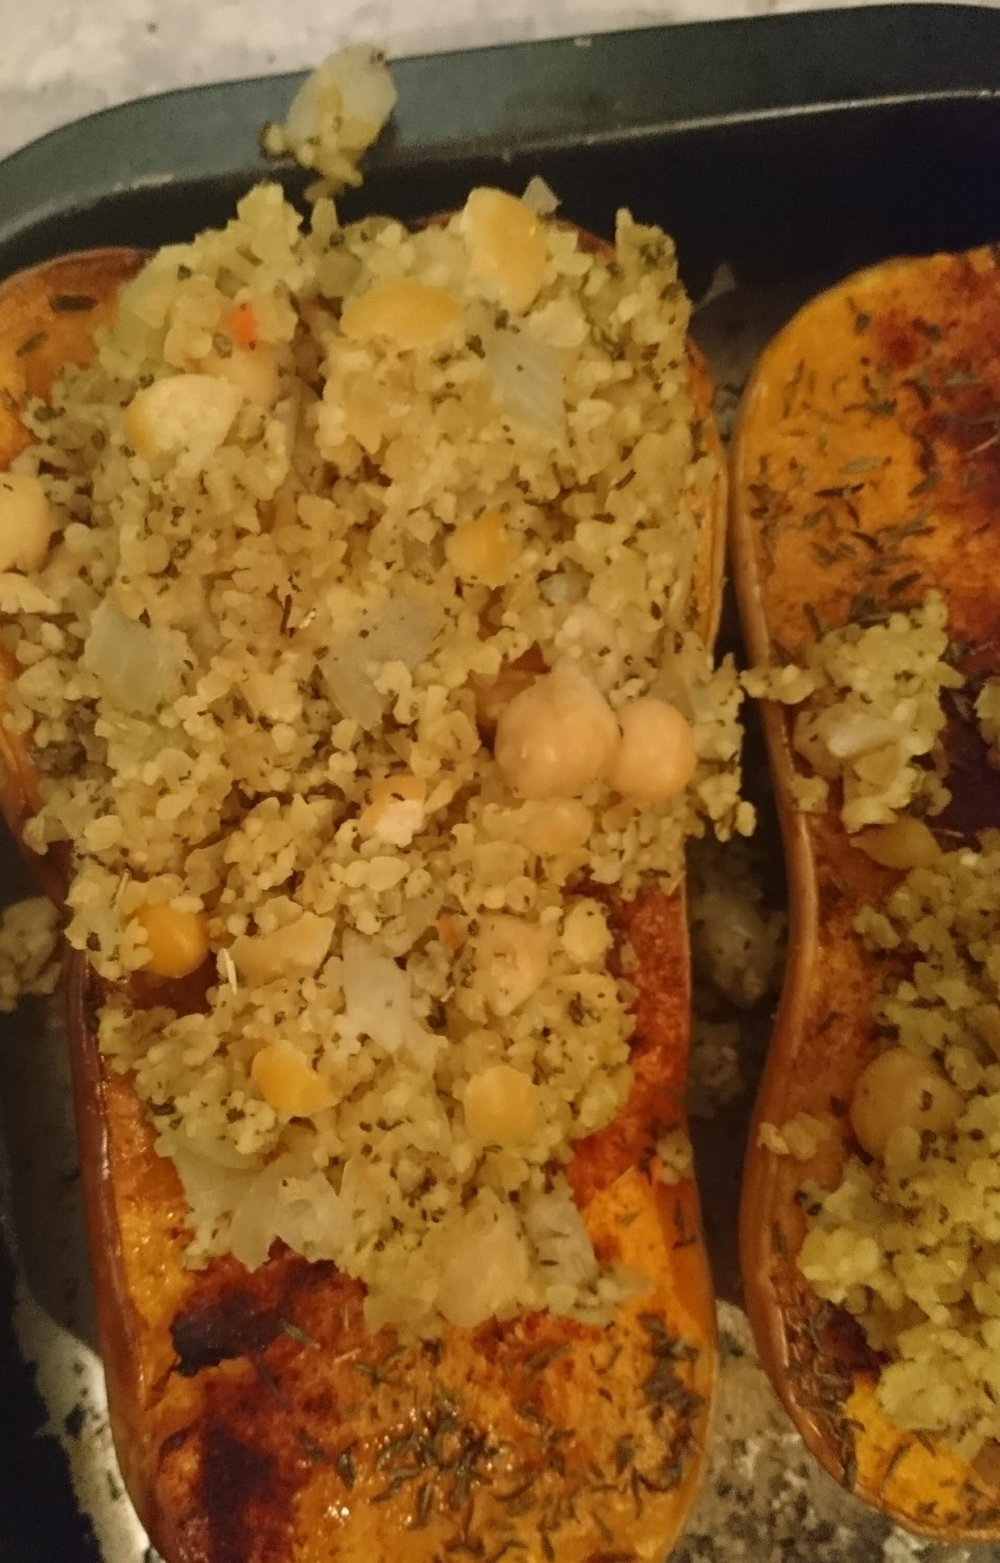 Prep time: 10 minutes Cook time: 55 minutes Yield: 2 - 4 servings  Ingredients:  1 Butternut squash  1 tsp Paprika  1 tsp Thyme  1 tbsp Fry Light Olive oil  100g Bulgur wheat cous cous mix  100g Cooked chickpeas  1 White onion  1 tbsp Garlic powder  1 tsp Bouillon or stock powder  1 tbsp Dried sage  Sea salt and pepper    Method:  1. Preheat the oven to 260C  2. Cut the squash in half lengthways and scoop out the seeds  3. Spray the Fry Light and rub the paprika, thyme, sea salt and pepper on the flesh of the squash  4. Place in the oven for 15 - 20  5. Meanwhile spray a saucepan with Fry Light, add to the heat and sautee the onions  6. Add the bulghur wheat and cous cous and sage  7. Mix the bouillon with 50ml boiled water and add to the saucepan  8. Stir until the bulghur wheat and cous cous has absorbed all the liquid  9. Add in the chickpeas and cook for 2 minutes then squash the chickpeas  10. Remove the squash from the oven and stuff with the mix  11. Put the squash back in the oven for 15 minutes -if you have any extra stuffing place this into an ovenproof dish and cook this along with the squash  Serve and enjoy